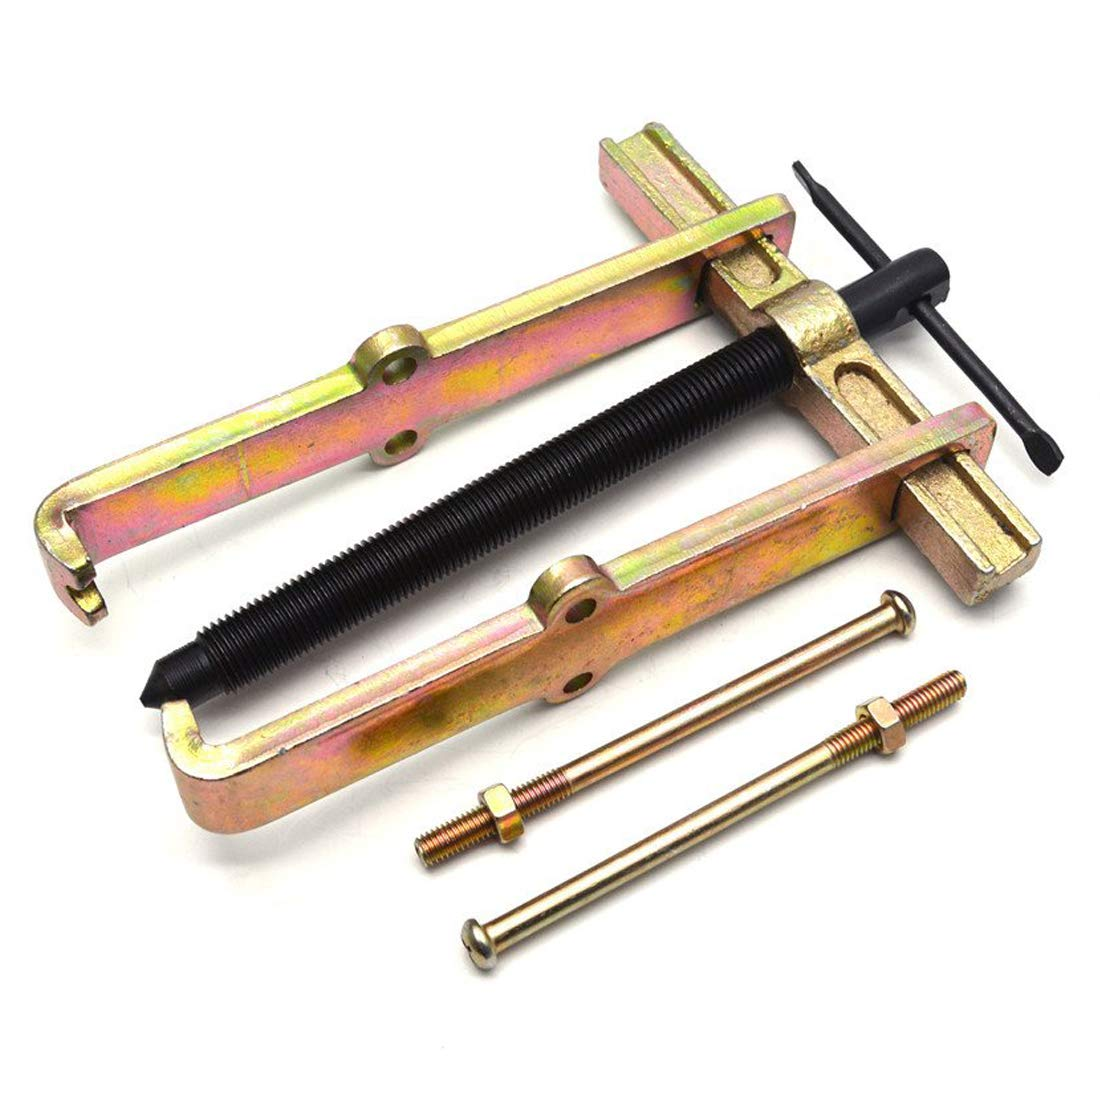 Sydien Adjustable Two Jaw Bearing Gear Puller Tool Motorcycle Car Auto Removing Kit (Size : 8'')